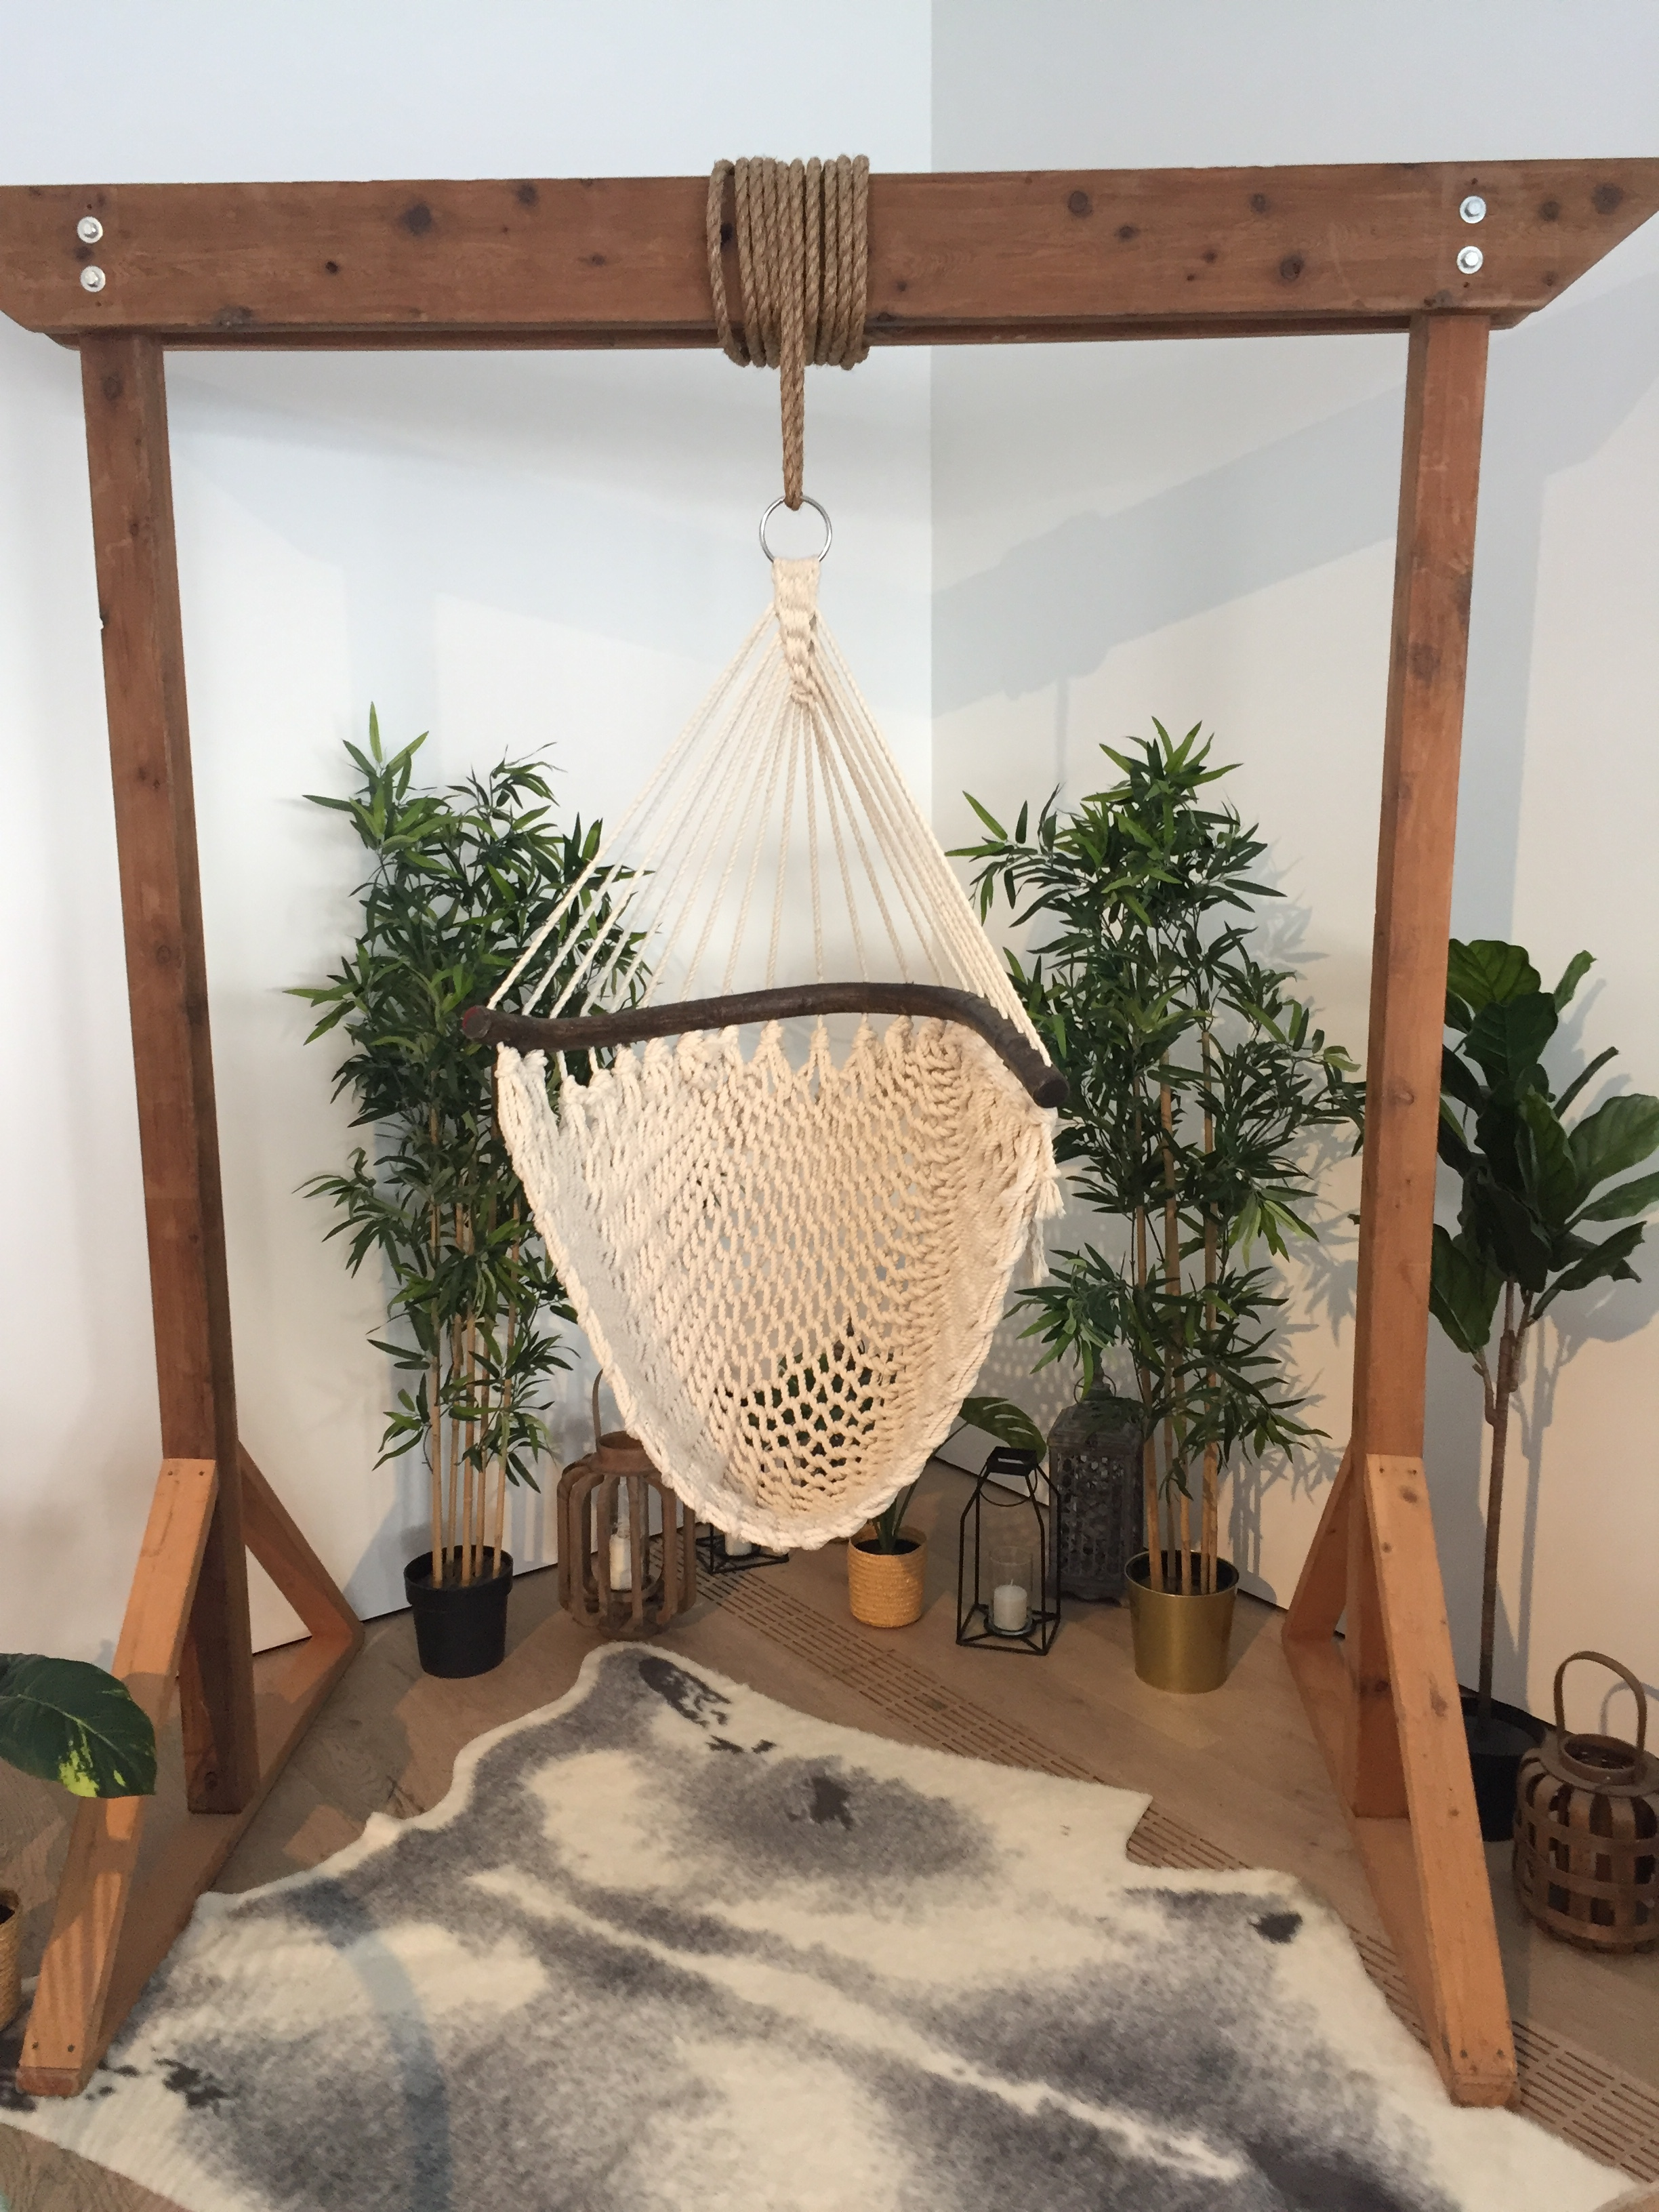 2 post arch + macrame swing   Quantity: 1  Price: $350.00